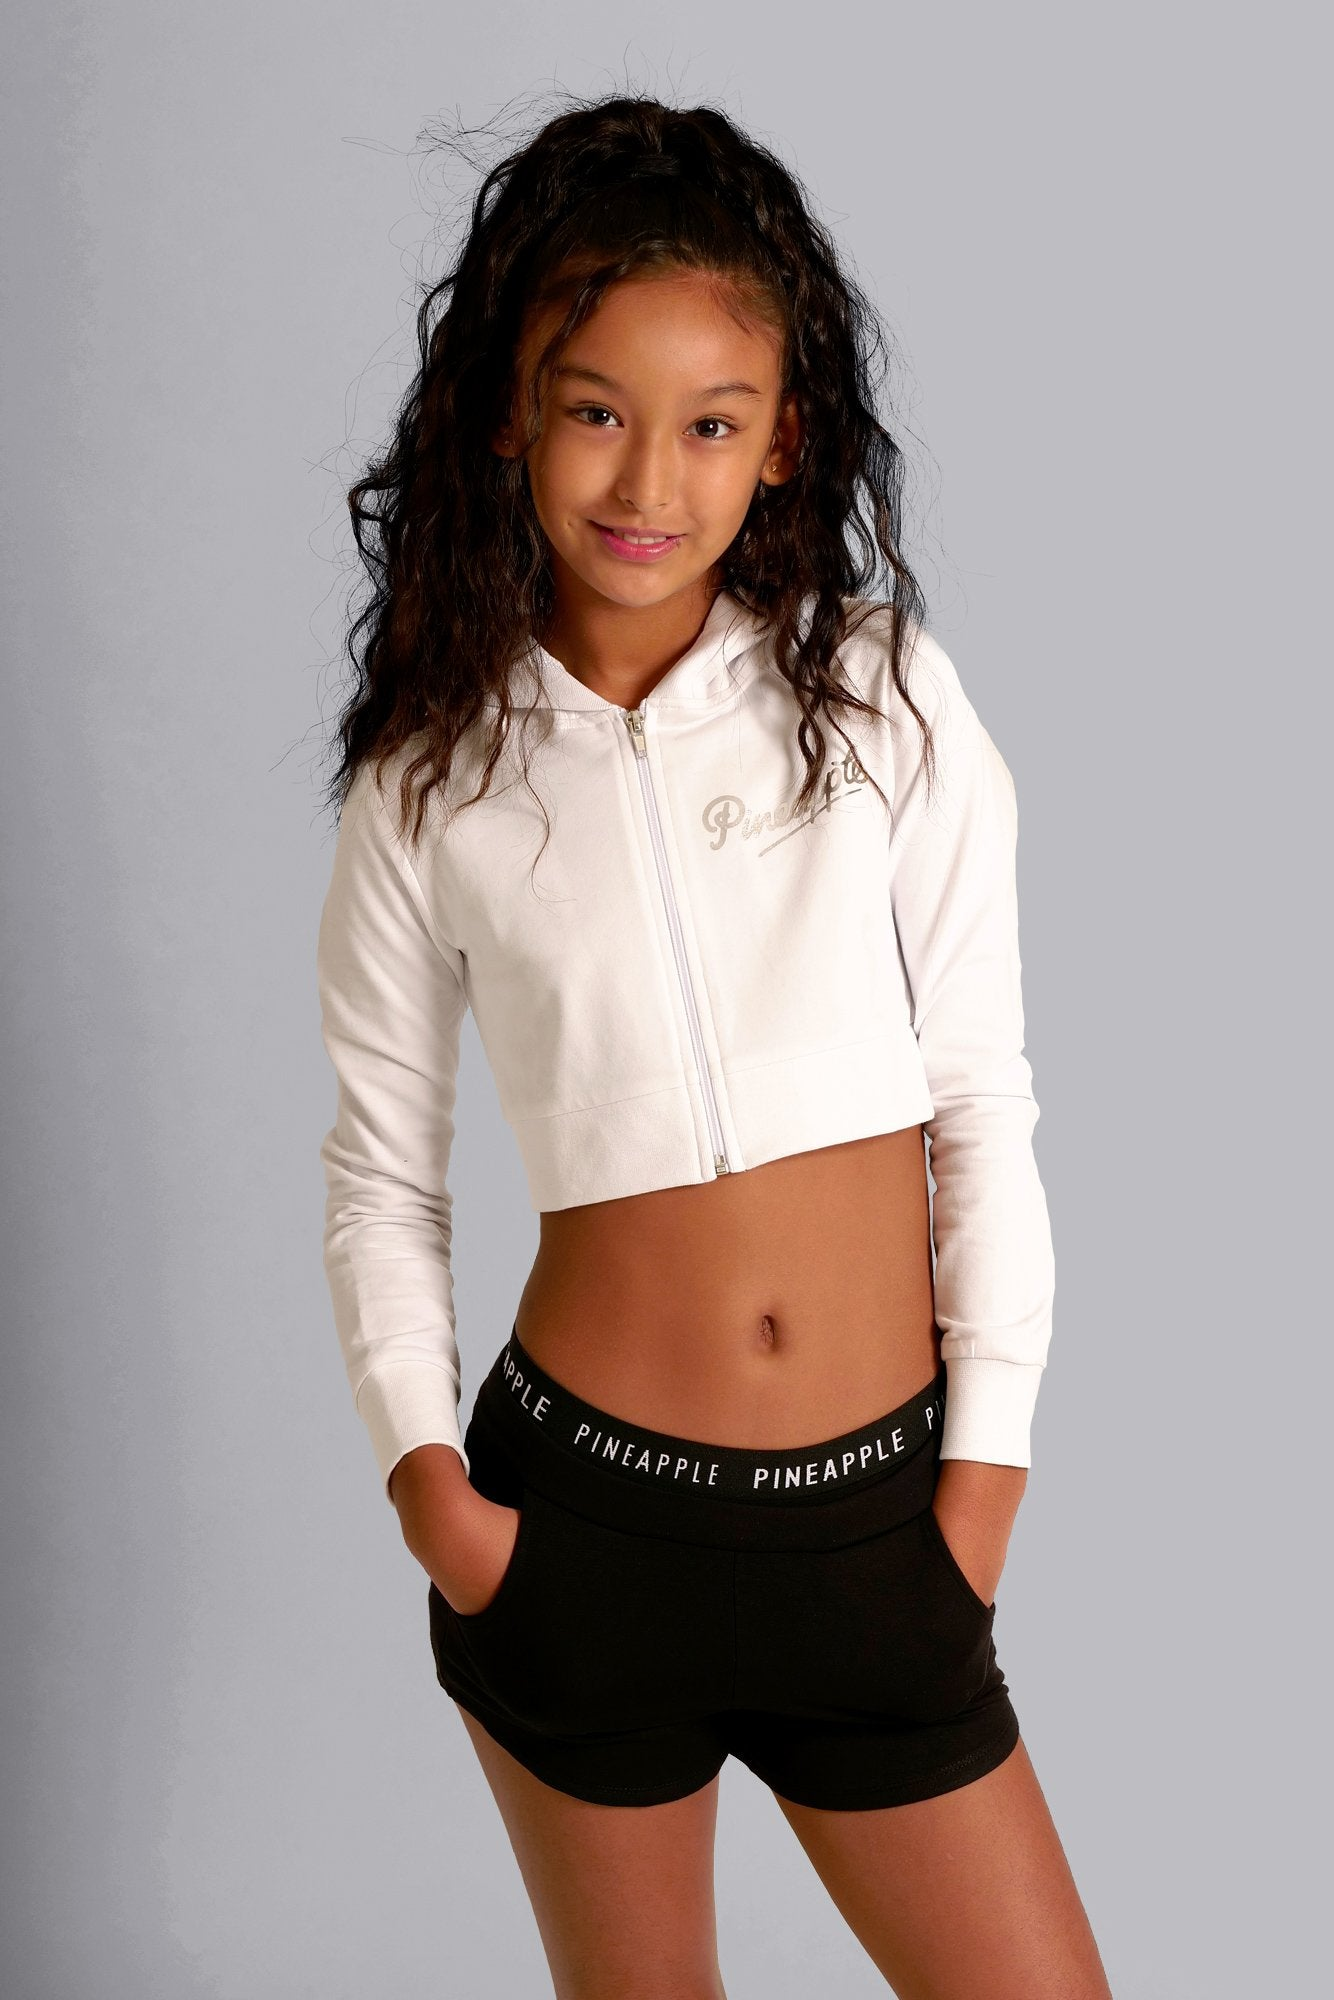 Pineapple Dancewear Girls' White Crop Diamante Zip Jacket TH15140